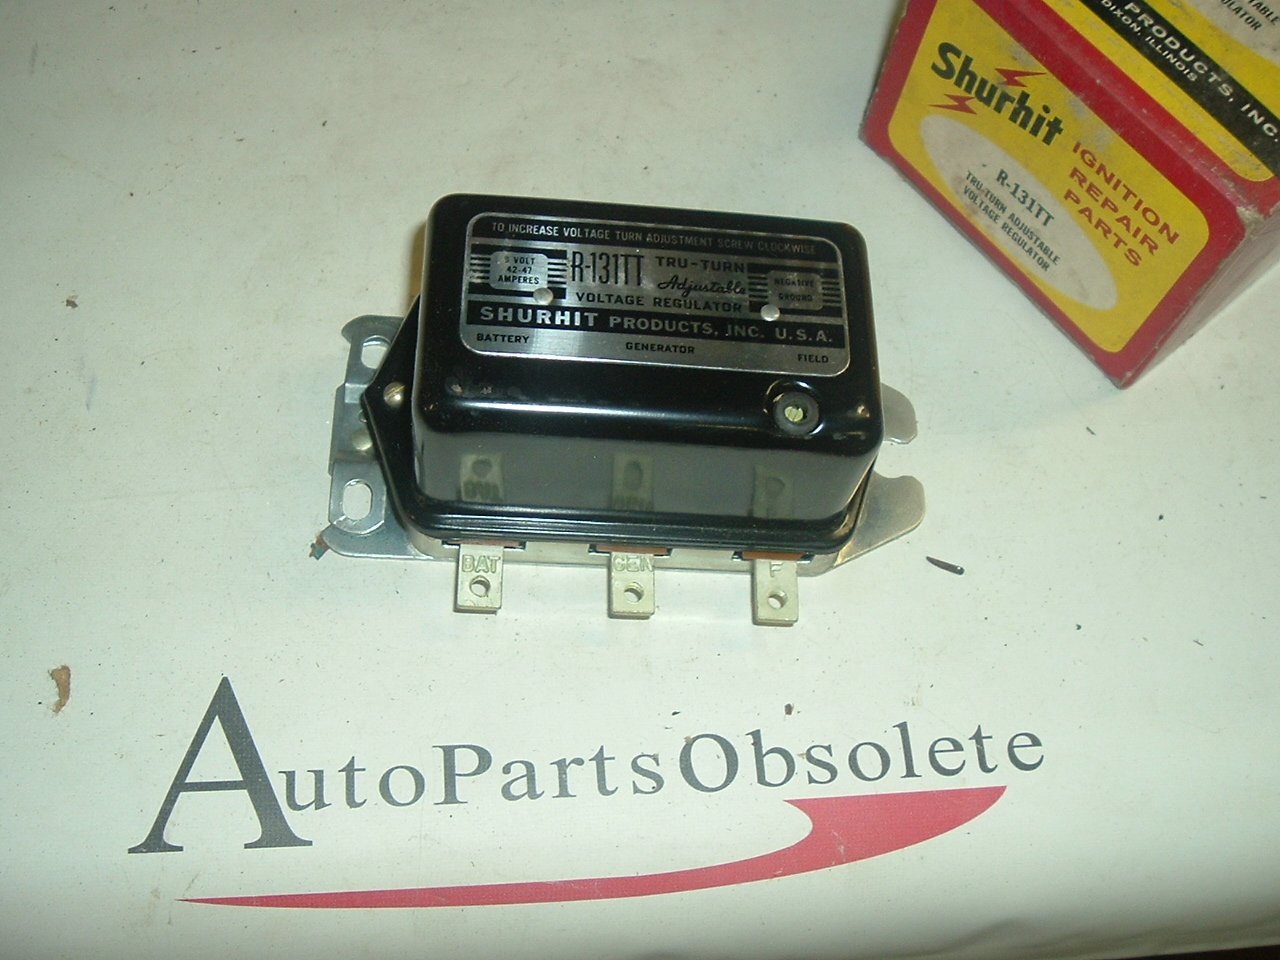 1949 50 51 52 53 54 Chevrolet Cadillac Buick Adjustable voltage regulator (a r131tt)